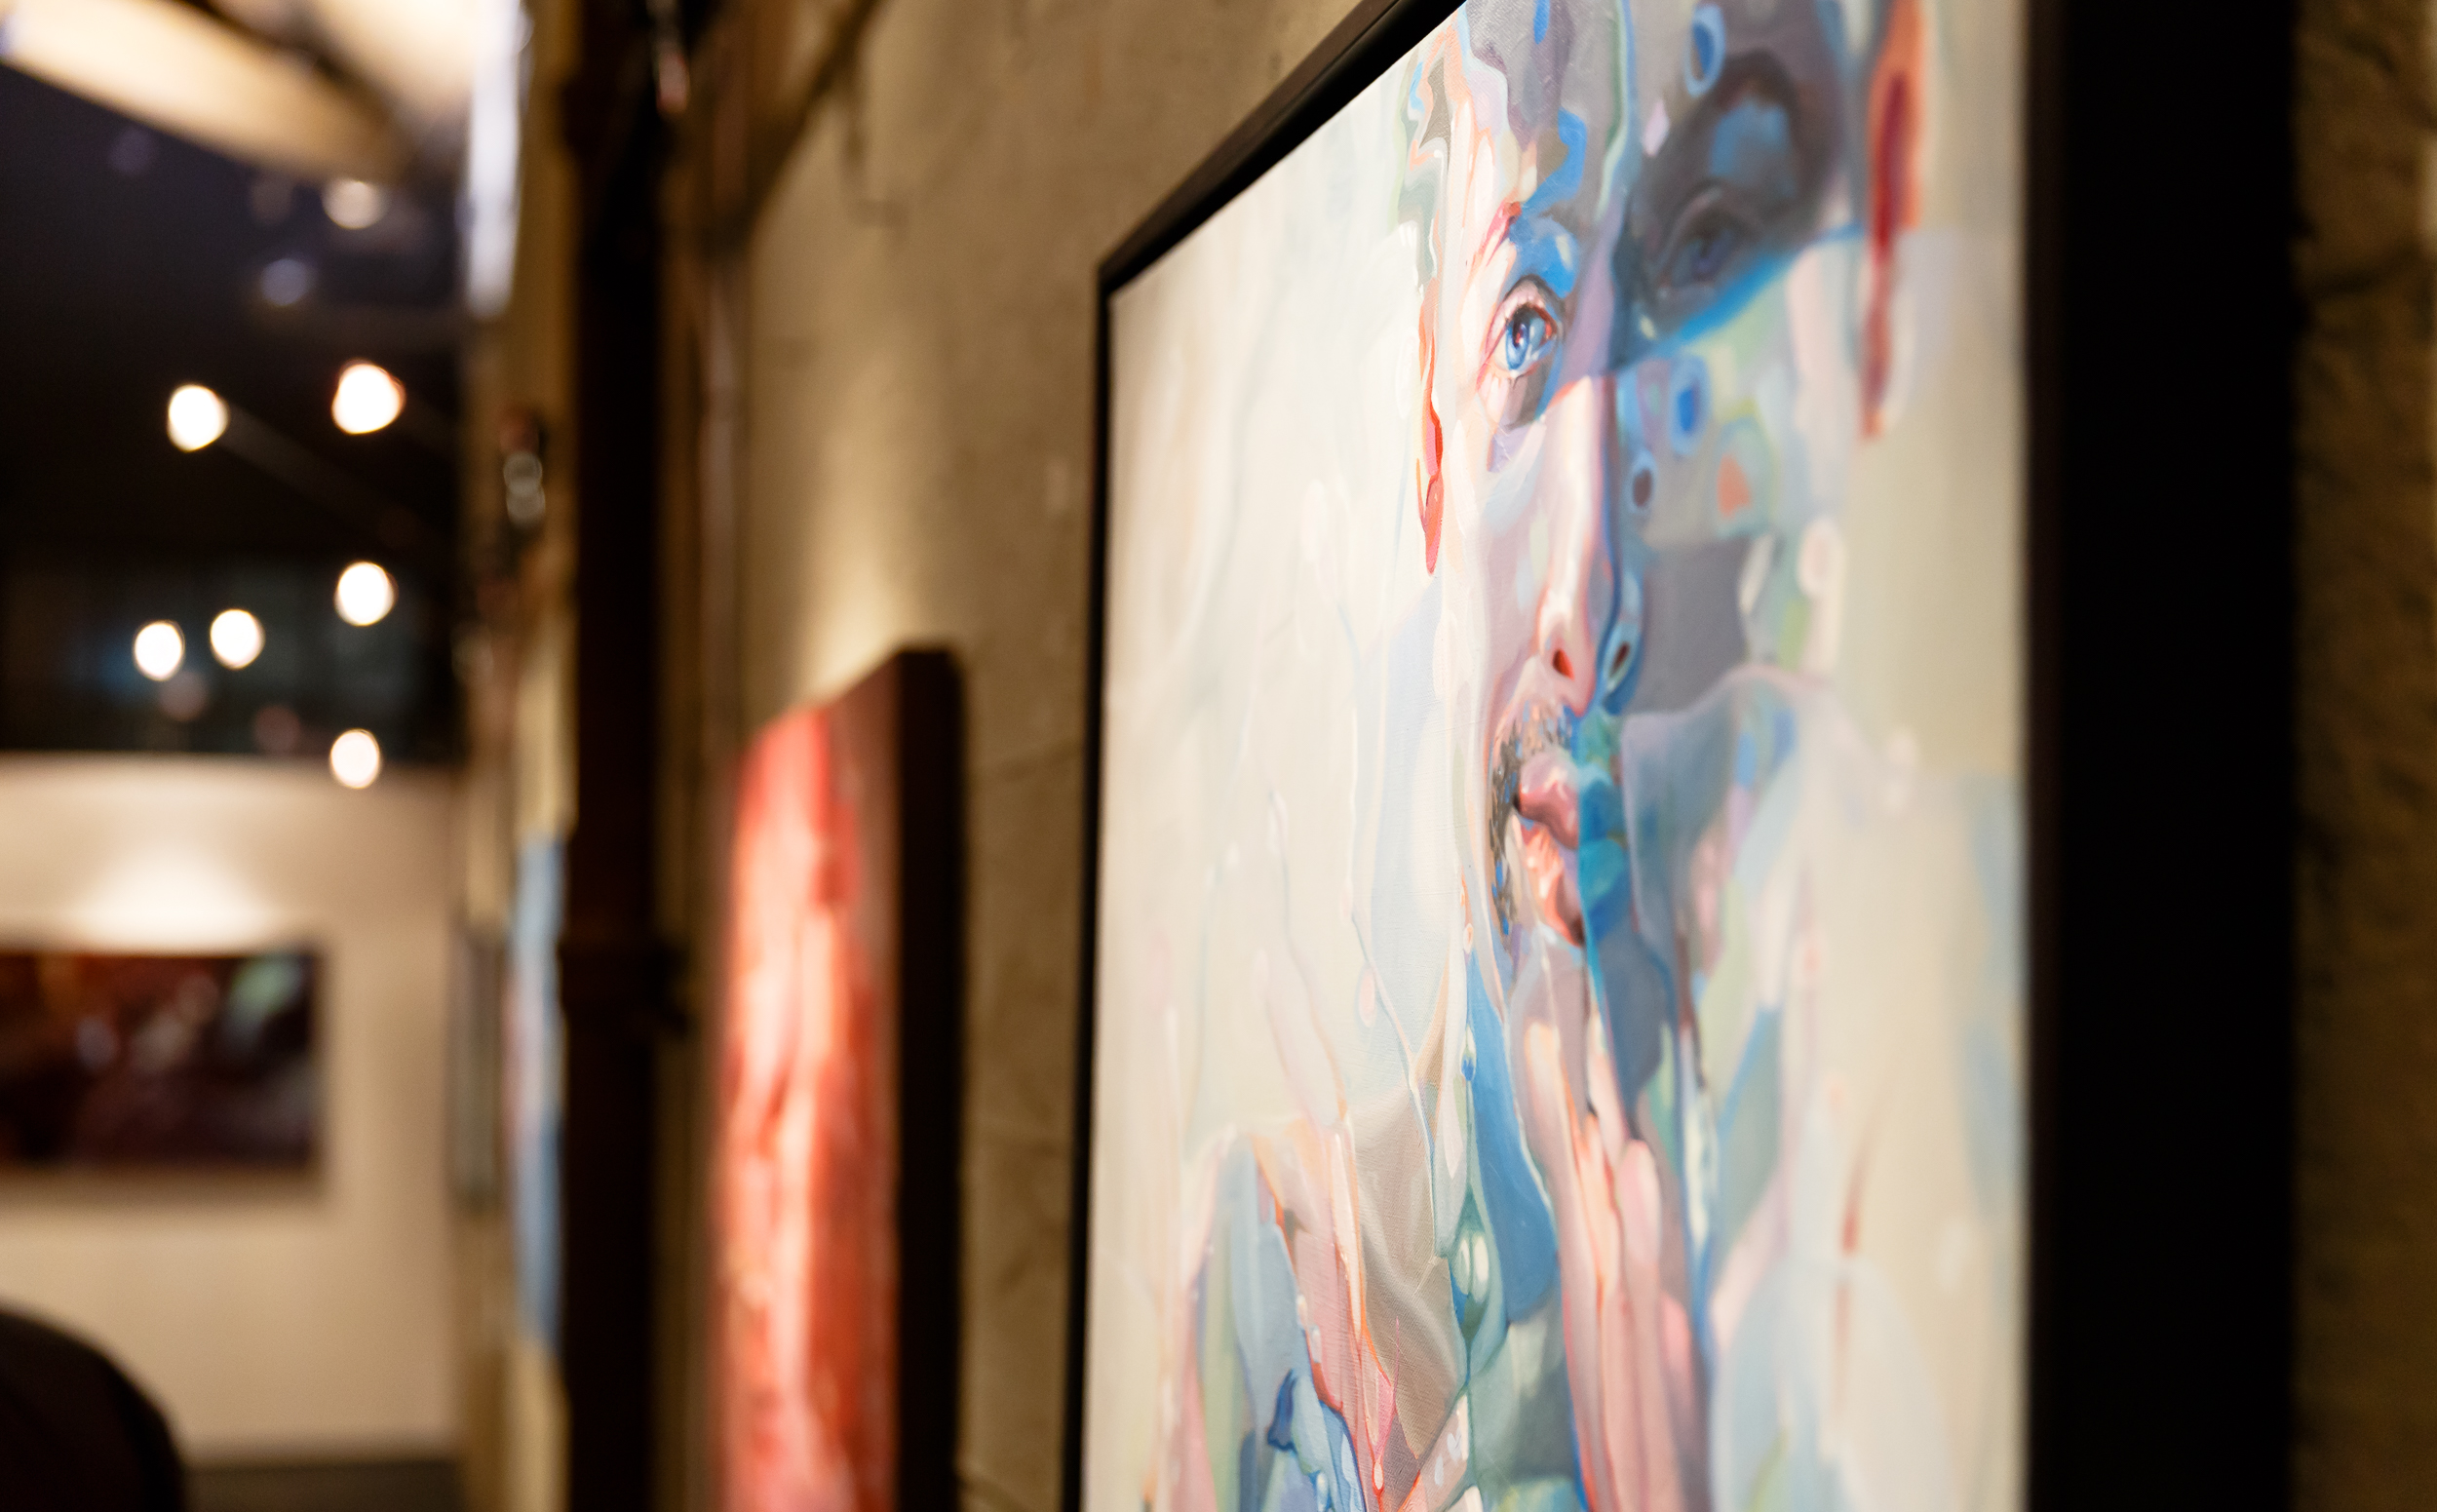 TED-Art-Vancouver-image3.jpg